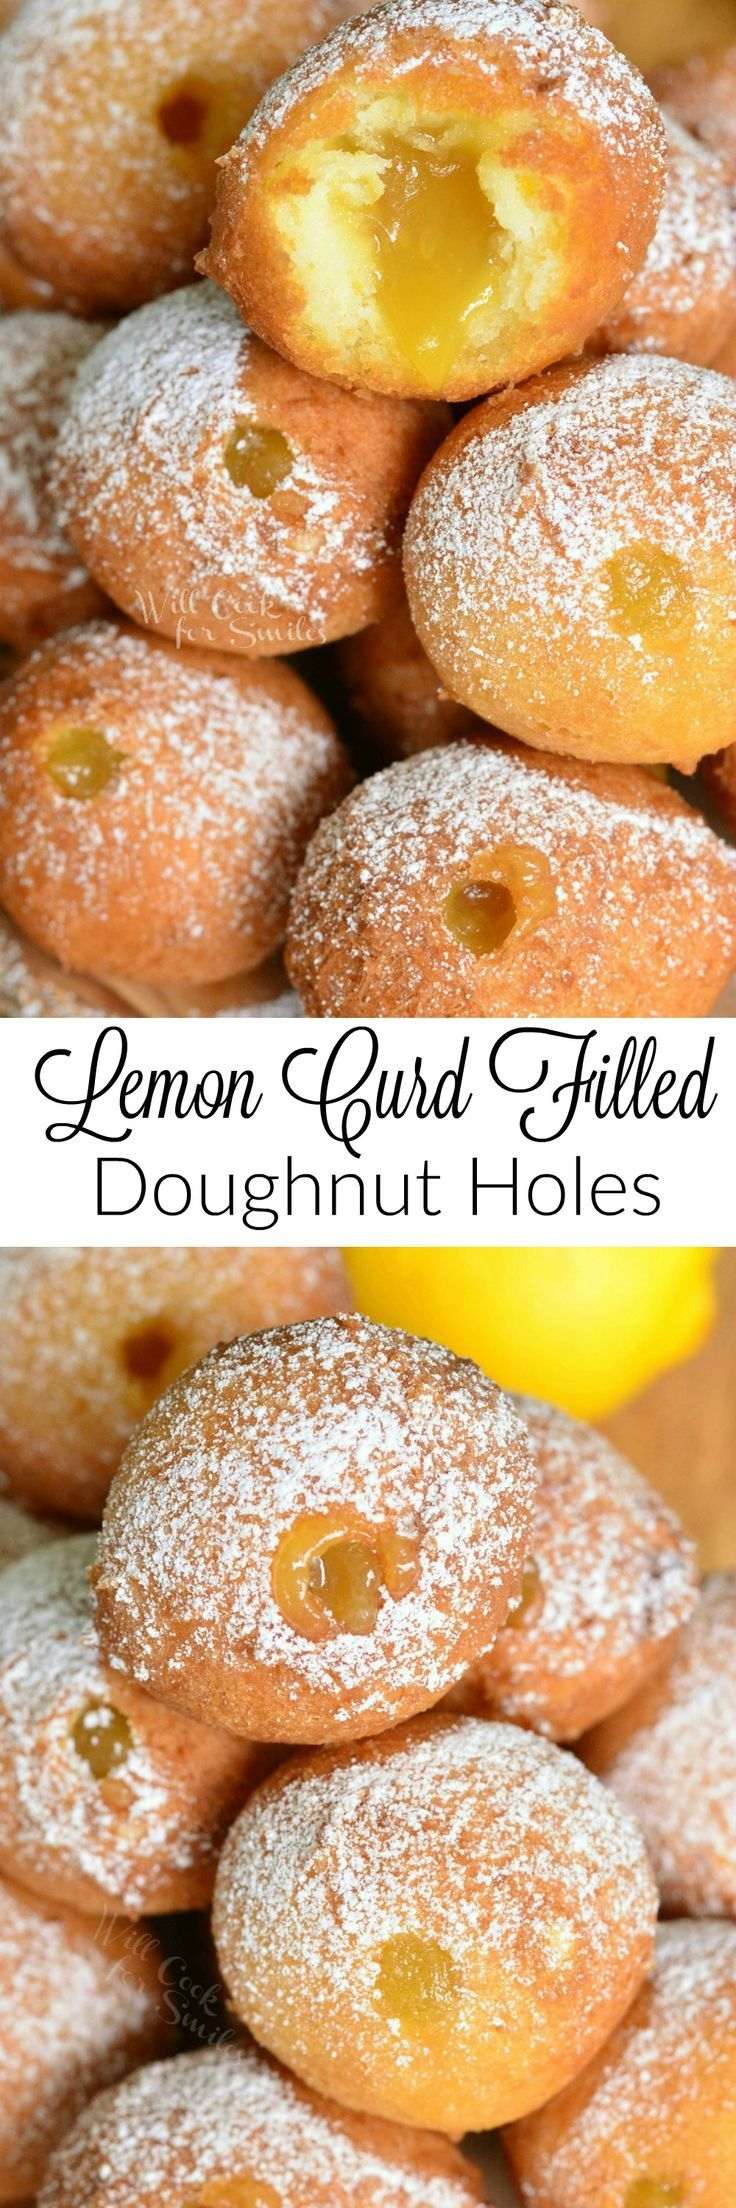 Lemon Curd Filled Doughnut Holes | Recipe | Doughnut holes, And then ...